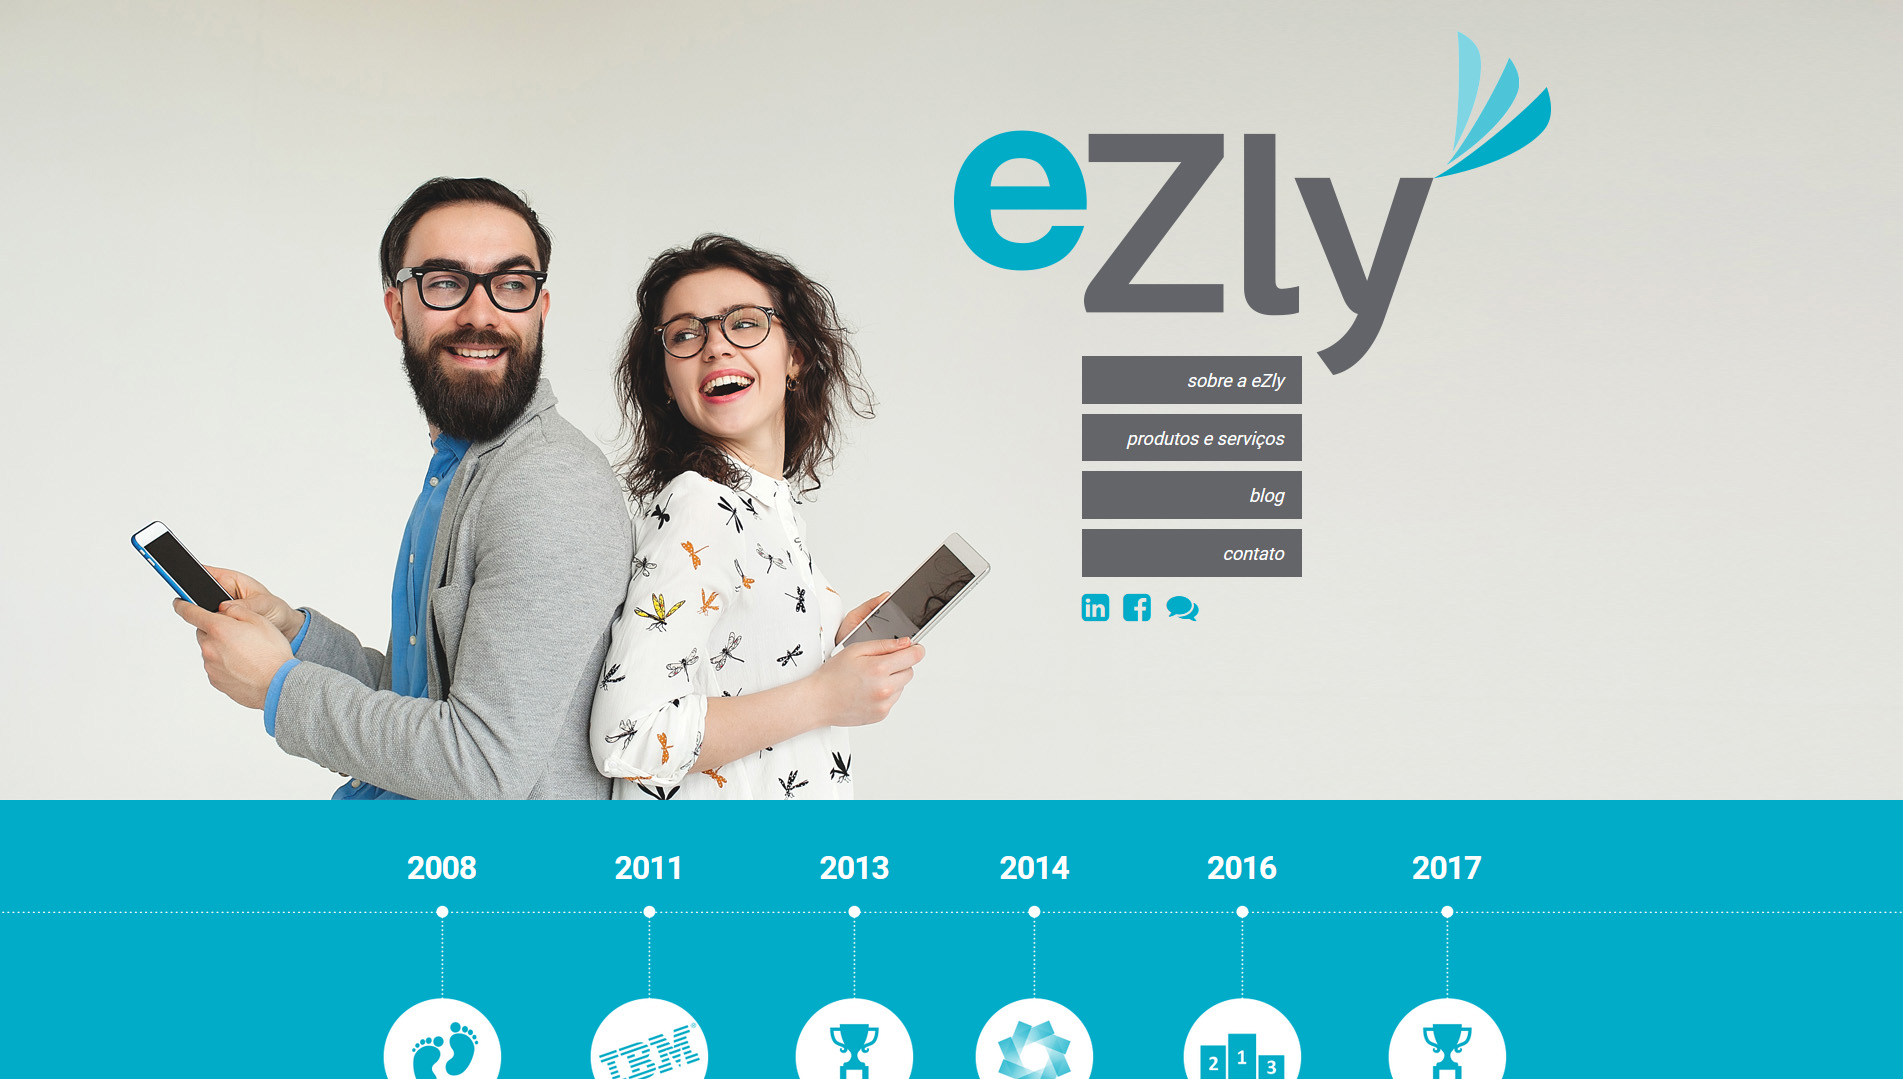 eZly Tecnologia website layout